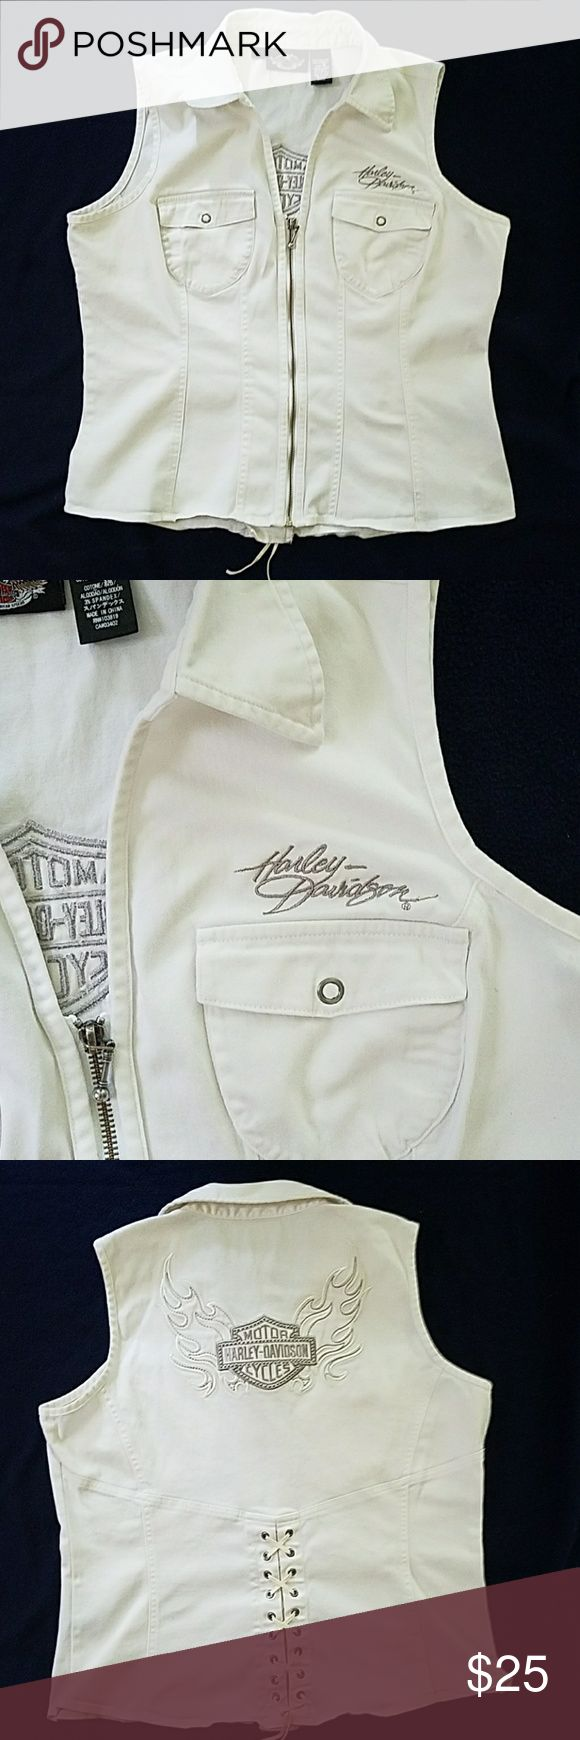 White Harley Davidson vest shirt White,Harley Davidson vest summer shirt.  Sleeveless, very detailed Harley emblem on the back with a lace detail criss cross 9 inches up the back.  Zipper front with 2 pockets.  Very comfortable shirt.  Gently used. Size large. Harley-Davidson Other